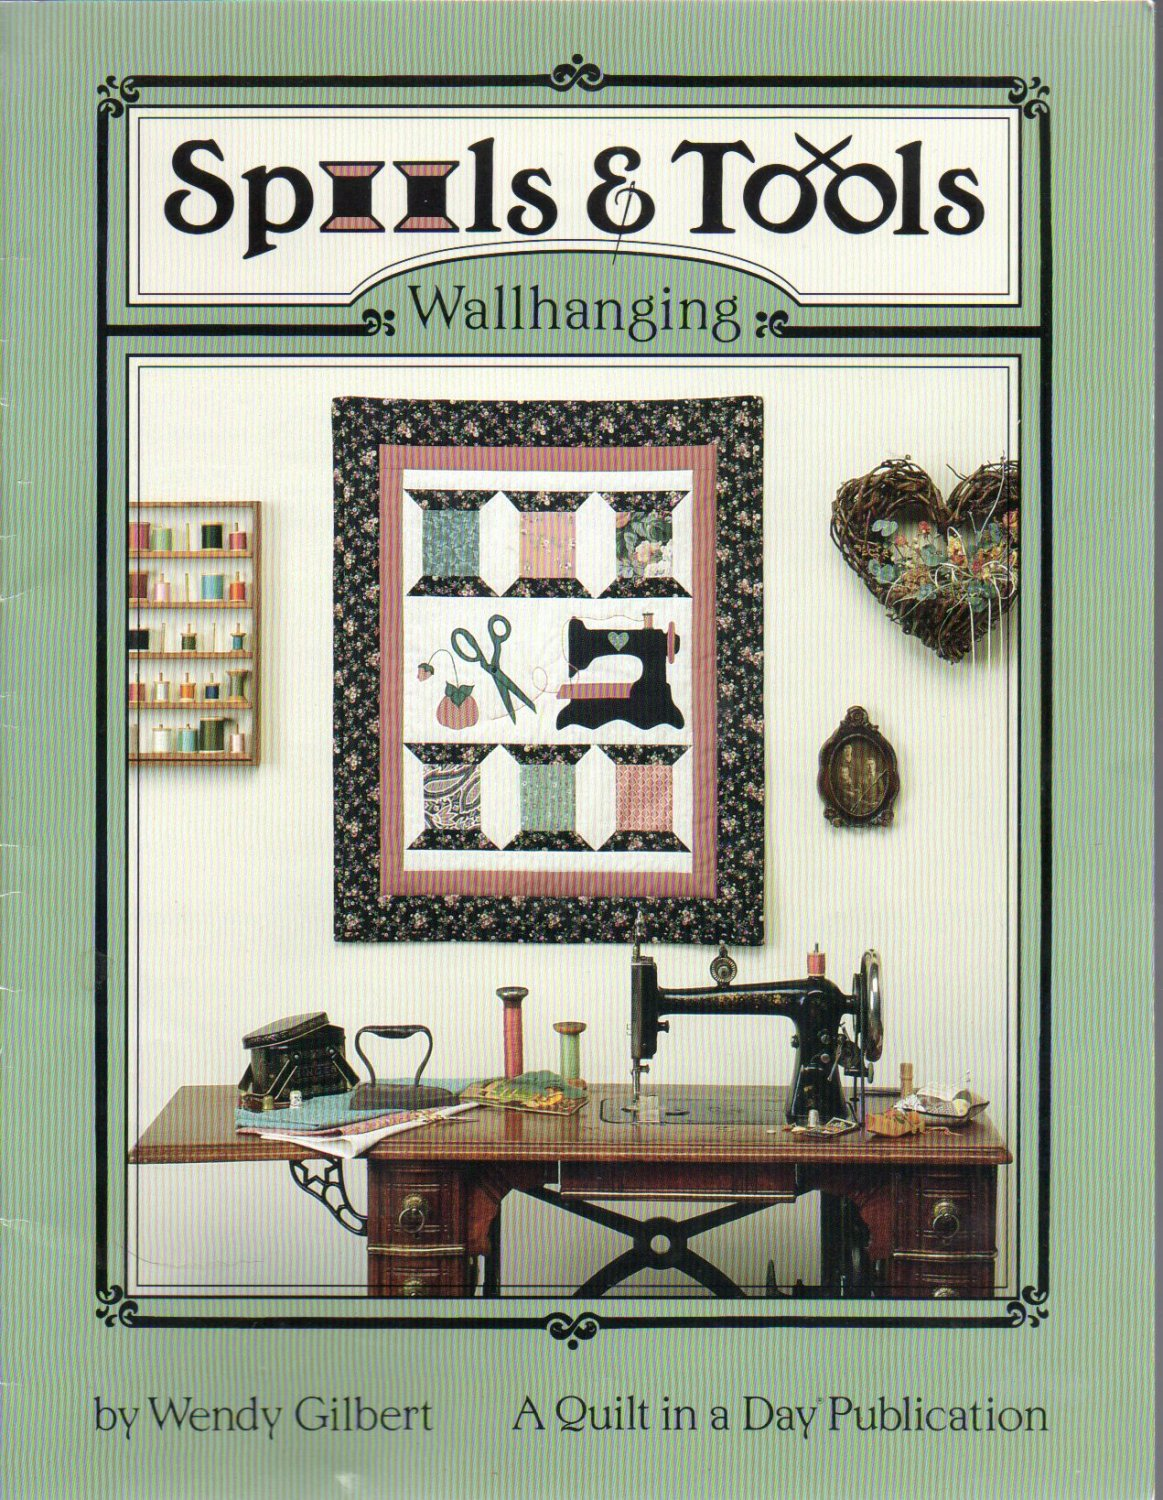 Spools & Tools: A Quilt in a Day Publication by Wendy Gilbert 1991